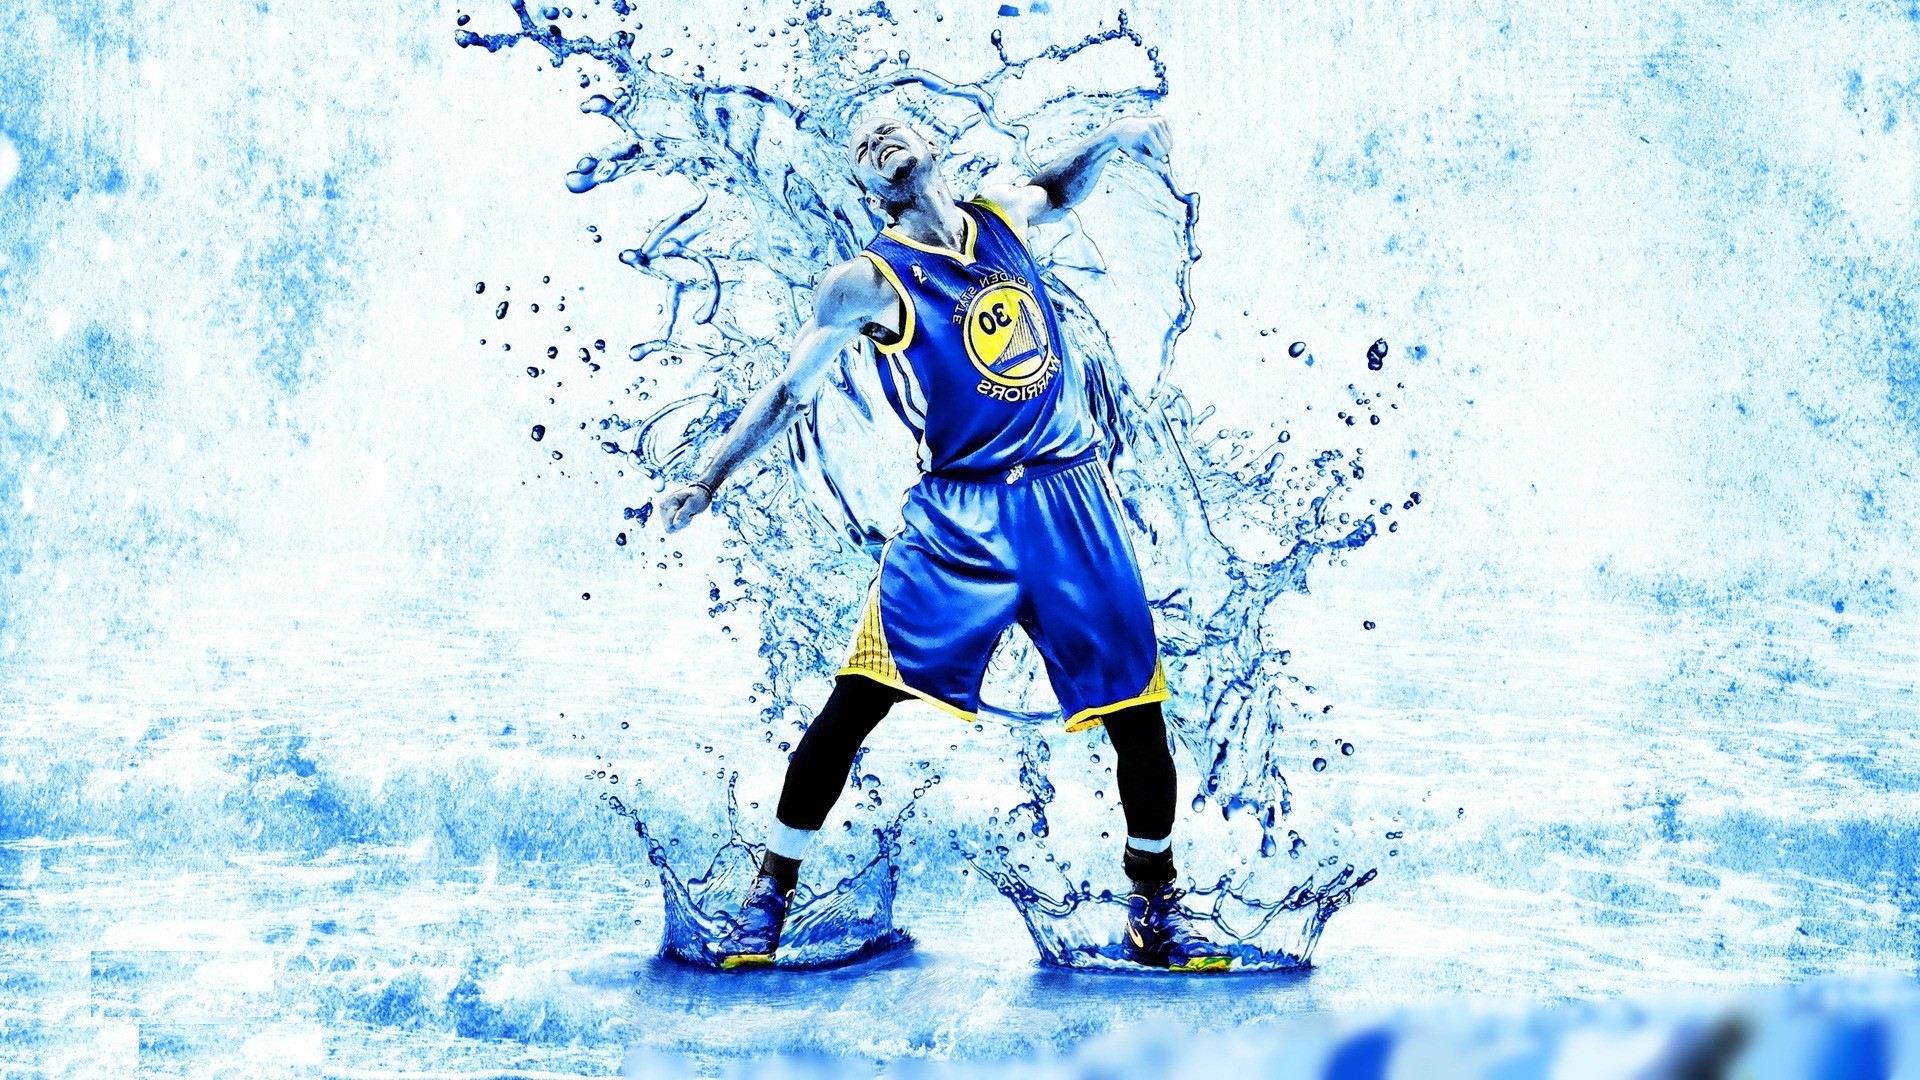 Stephen Curry Wallpaper 2015 | Image Gallery and More